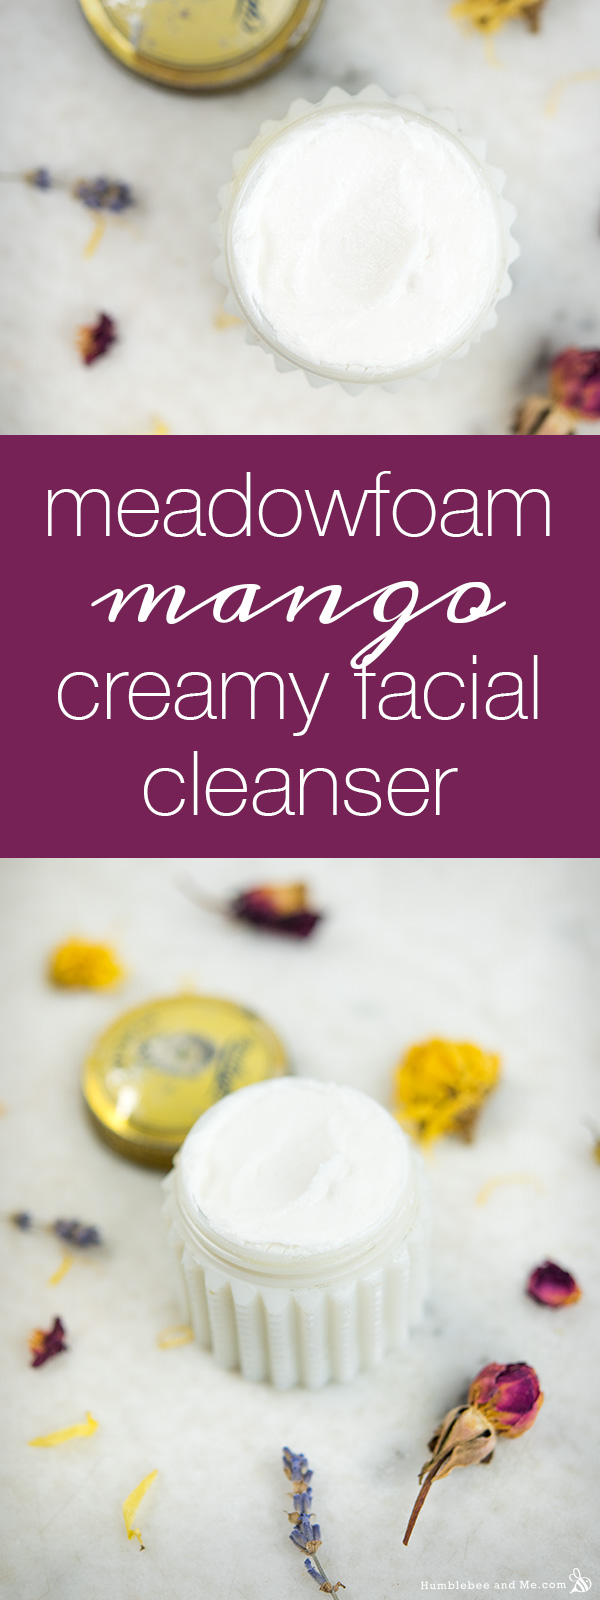 How to make Meadowfoam Mango Creamy Facial Cleanser